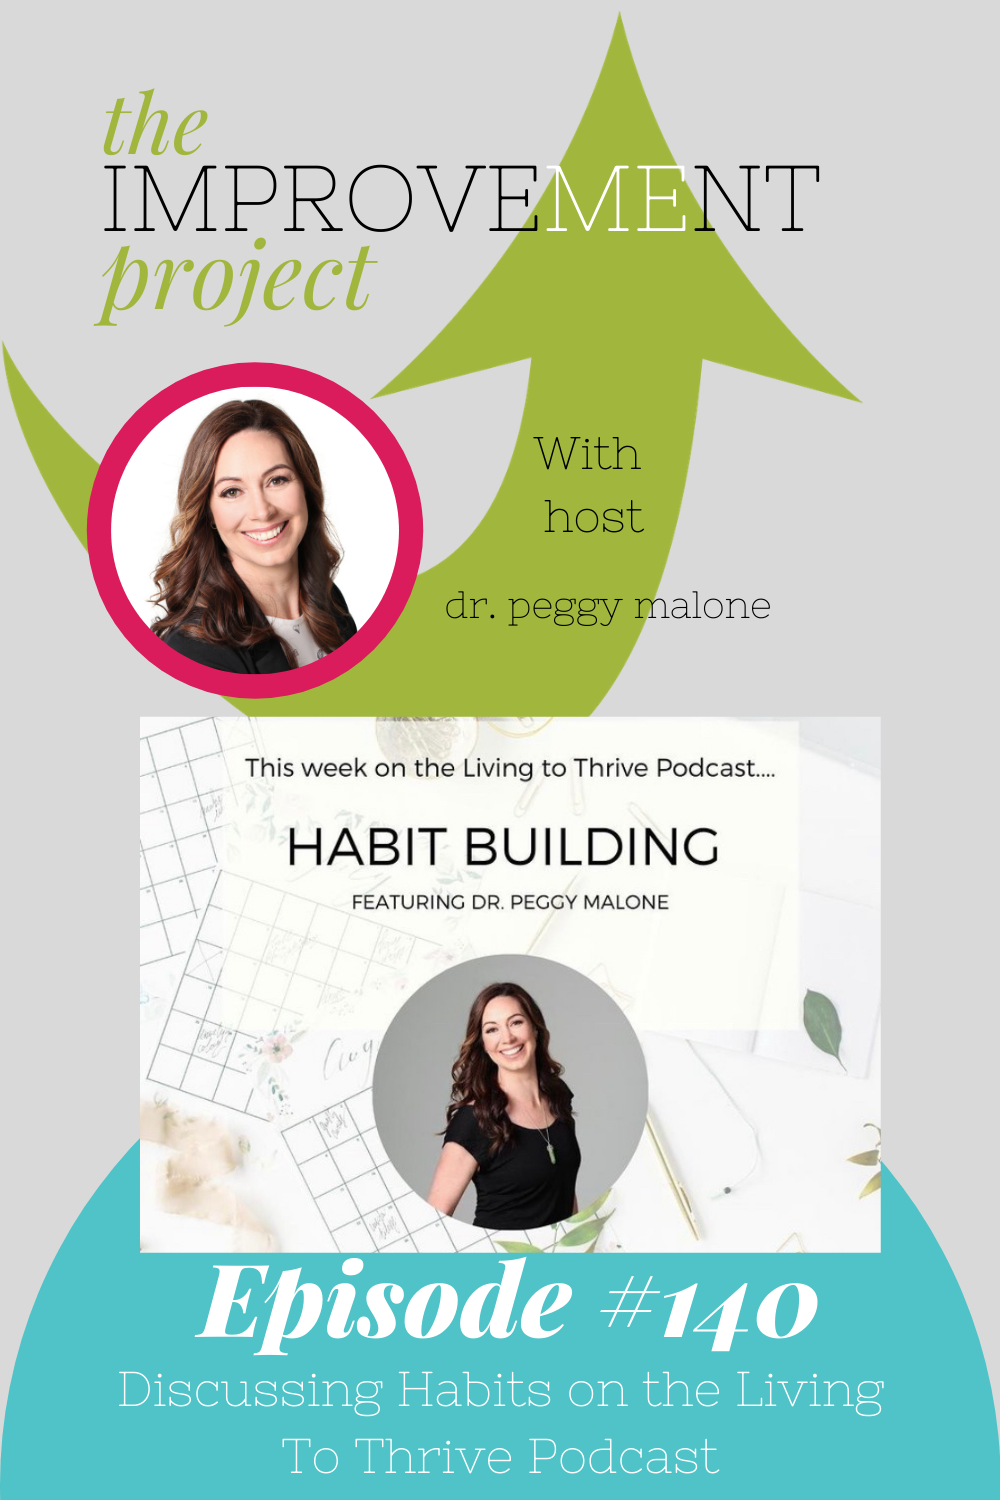 Discussing Habits on the Living To Thrive Podcast